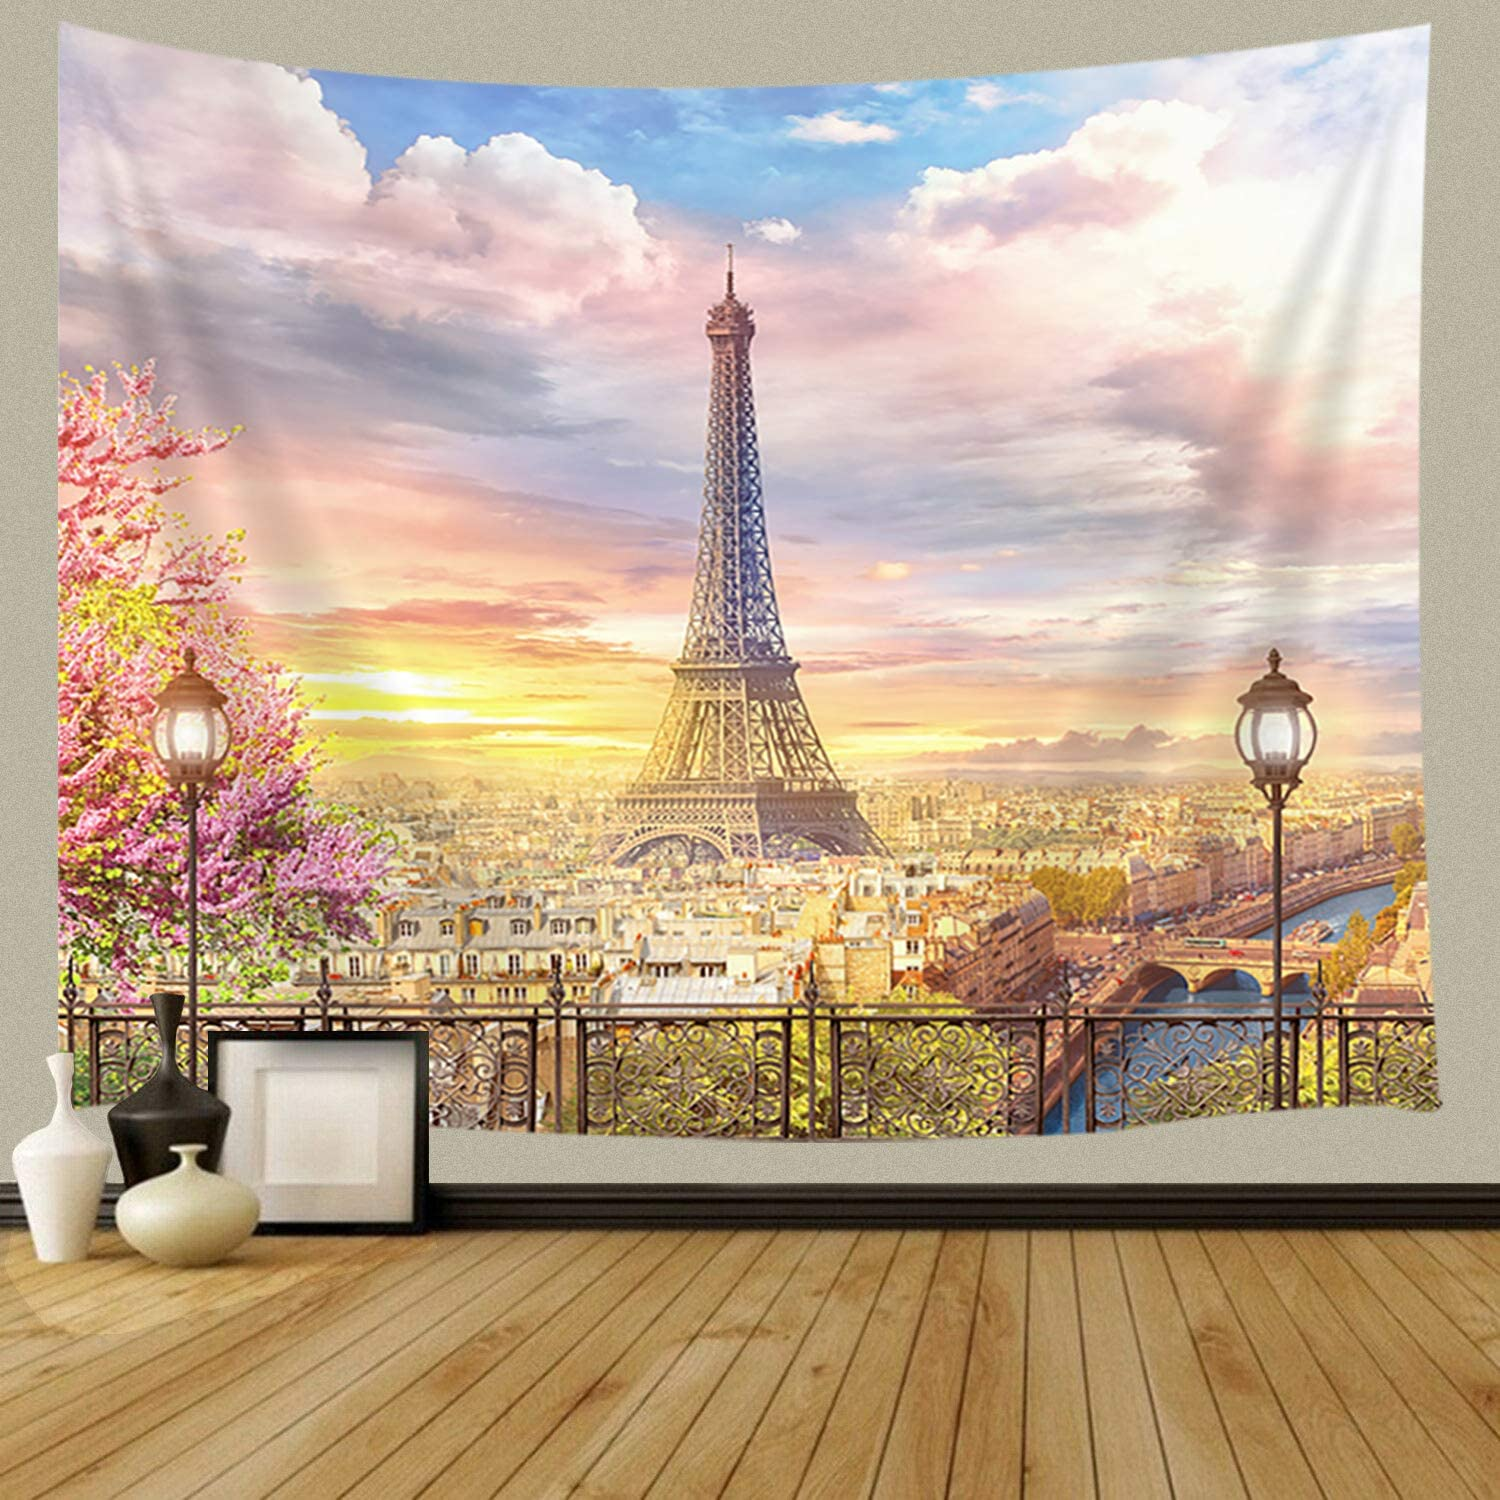 France Wall Tapestry, Balcony on the Paris Effel Tower Spring Scenery of Romantic Art Home Decor Tapestry for Bedroom Living Room Dorm Wall Hanging Tapestry Beach Throw Table Runner Cloth 71x60inches